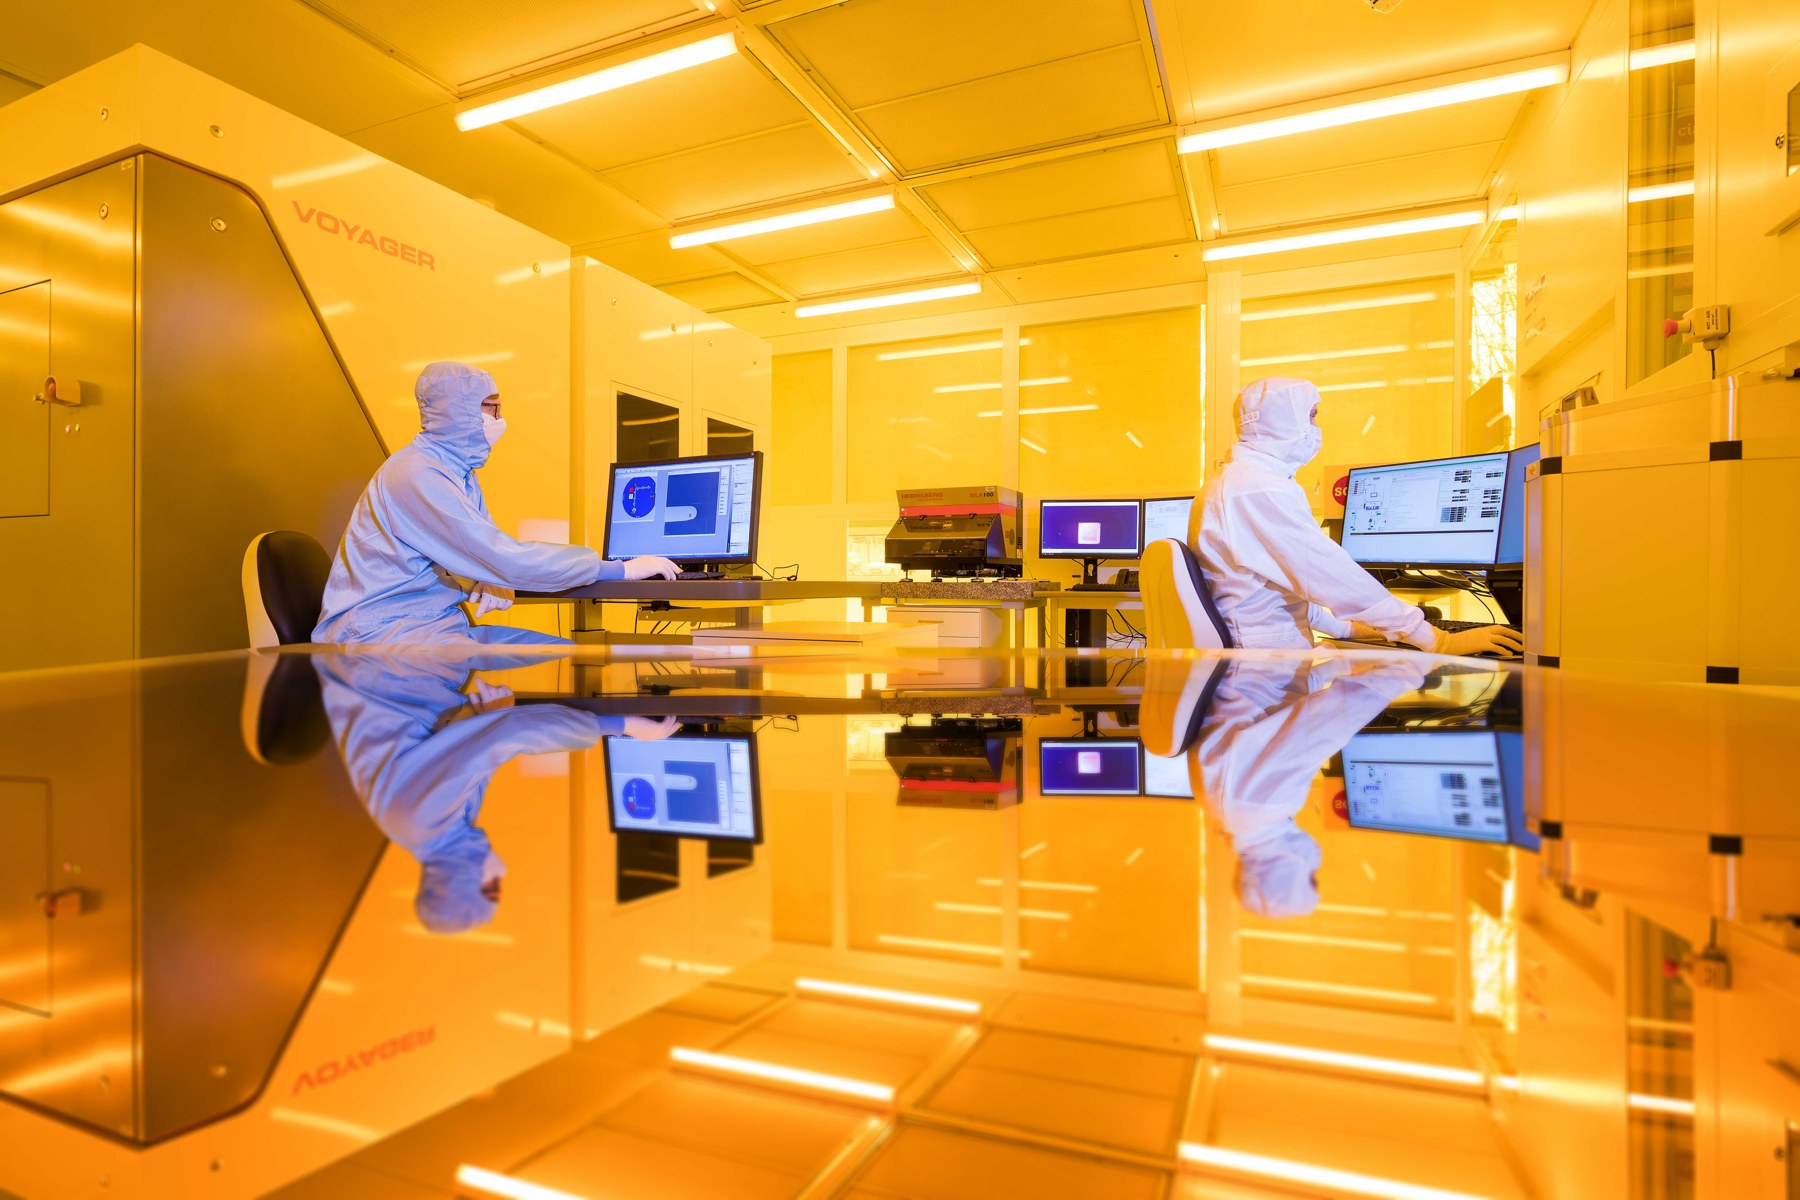 two scientists working in yellow light of the clean room